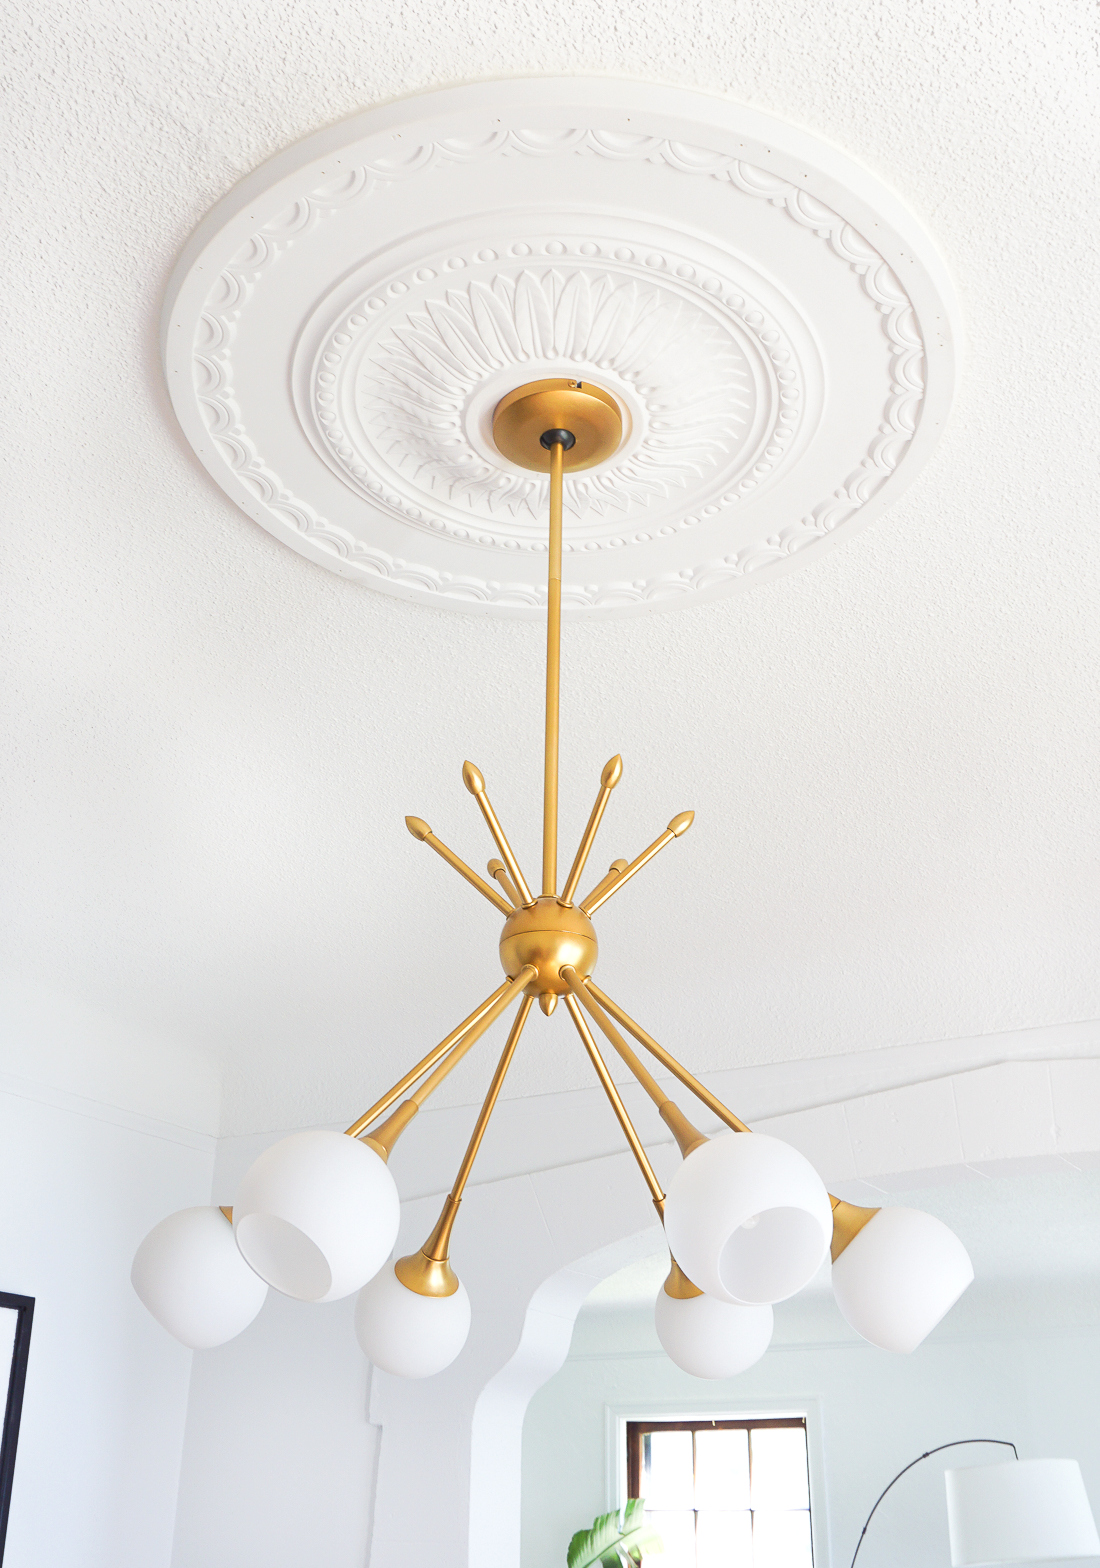 How to center a light fixture using a ceiling medallion francois et moi - Light fixtures chandeliers ...